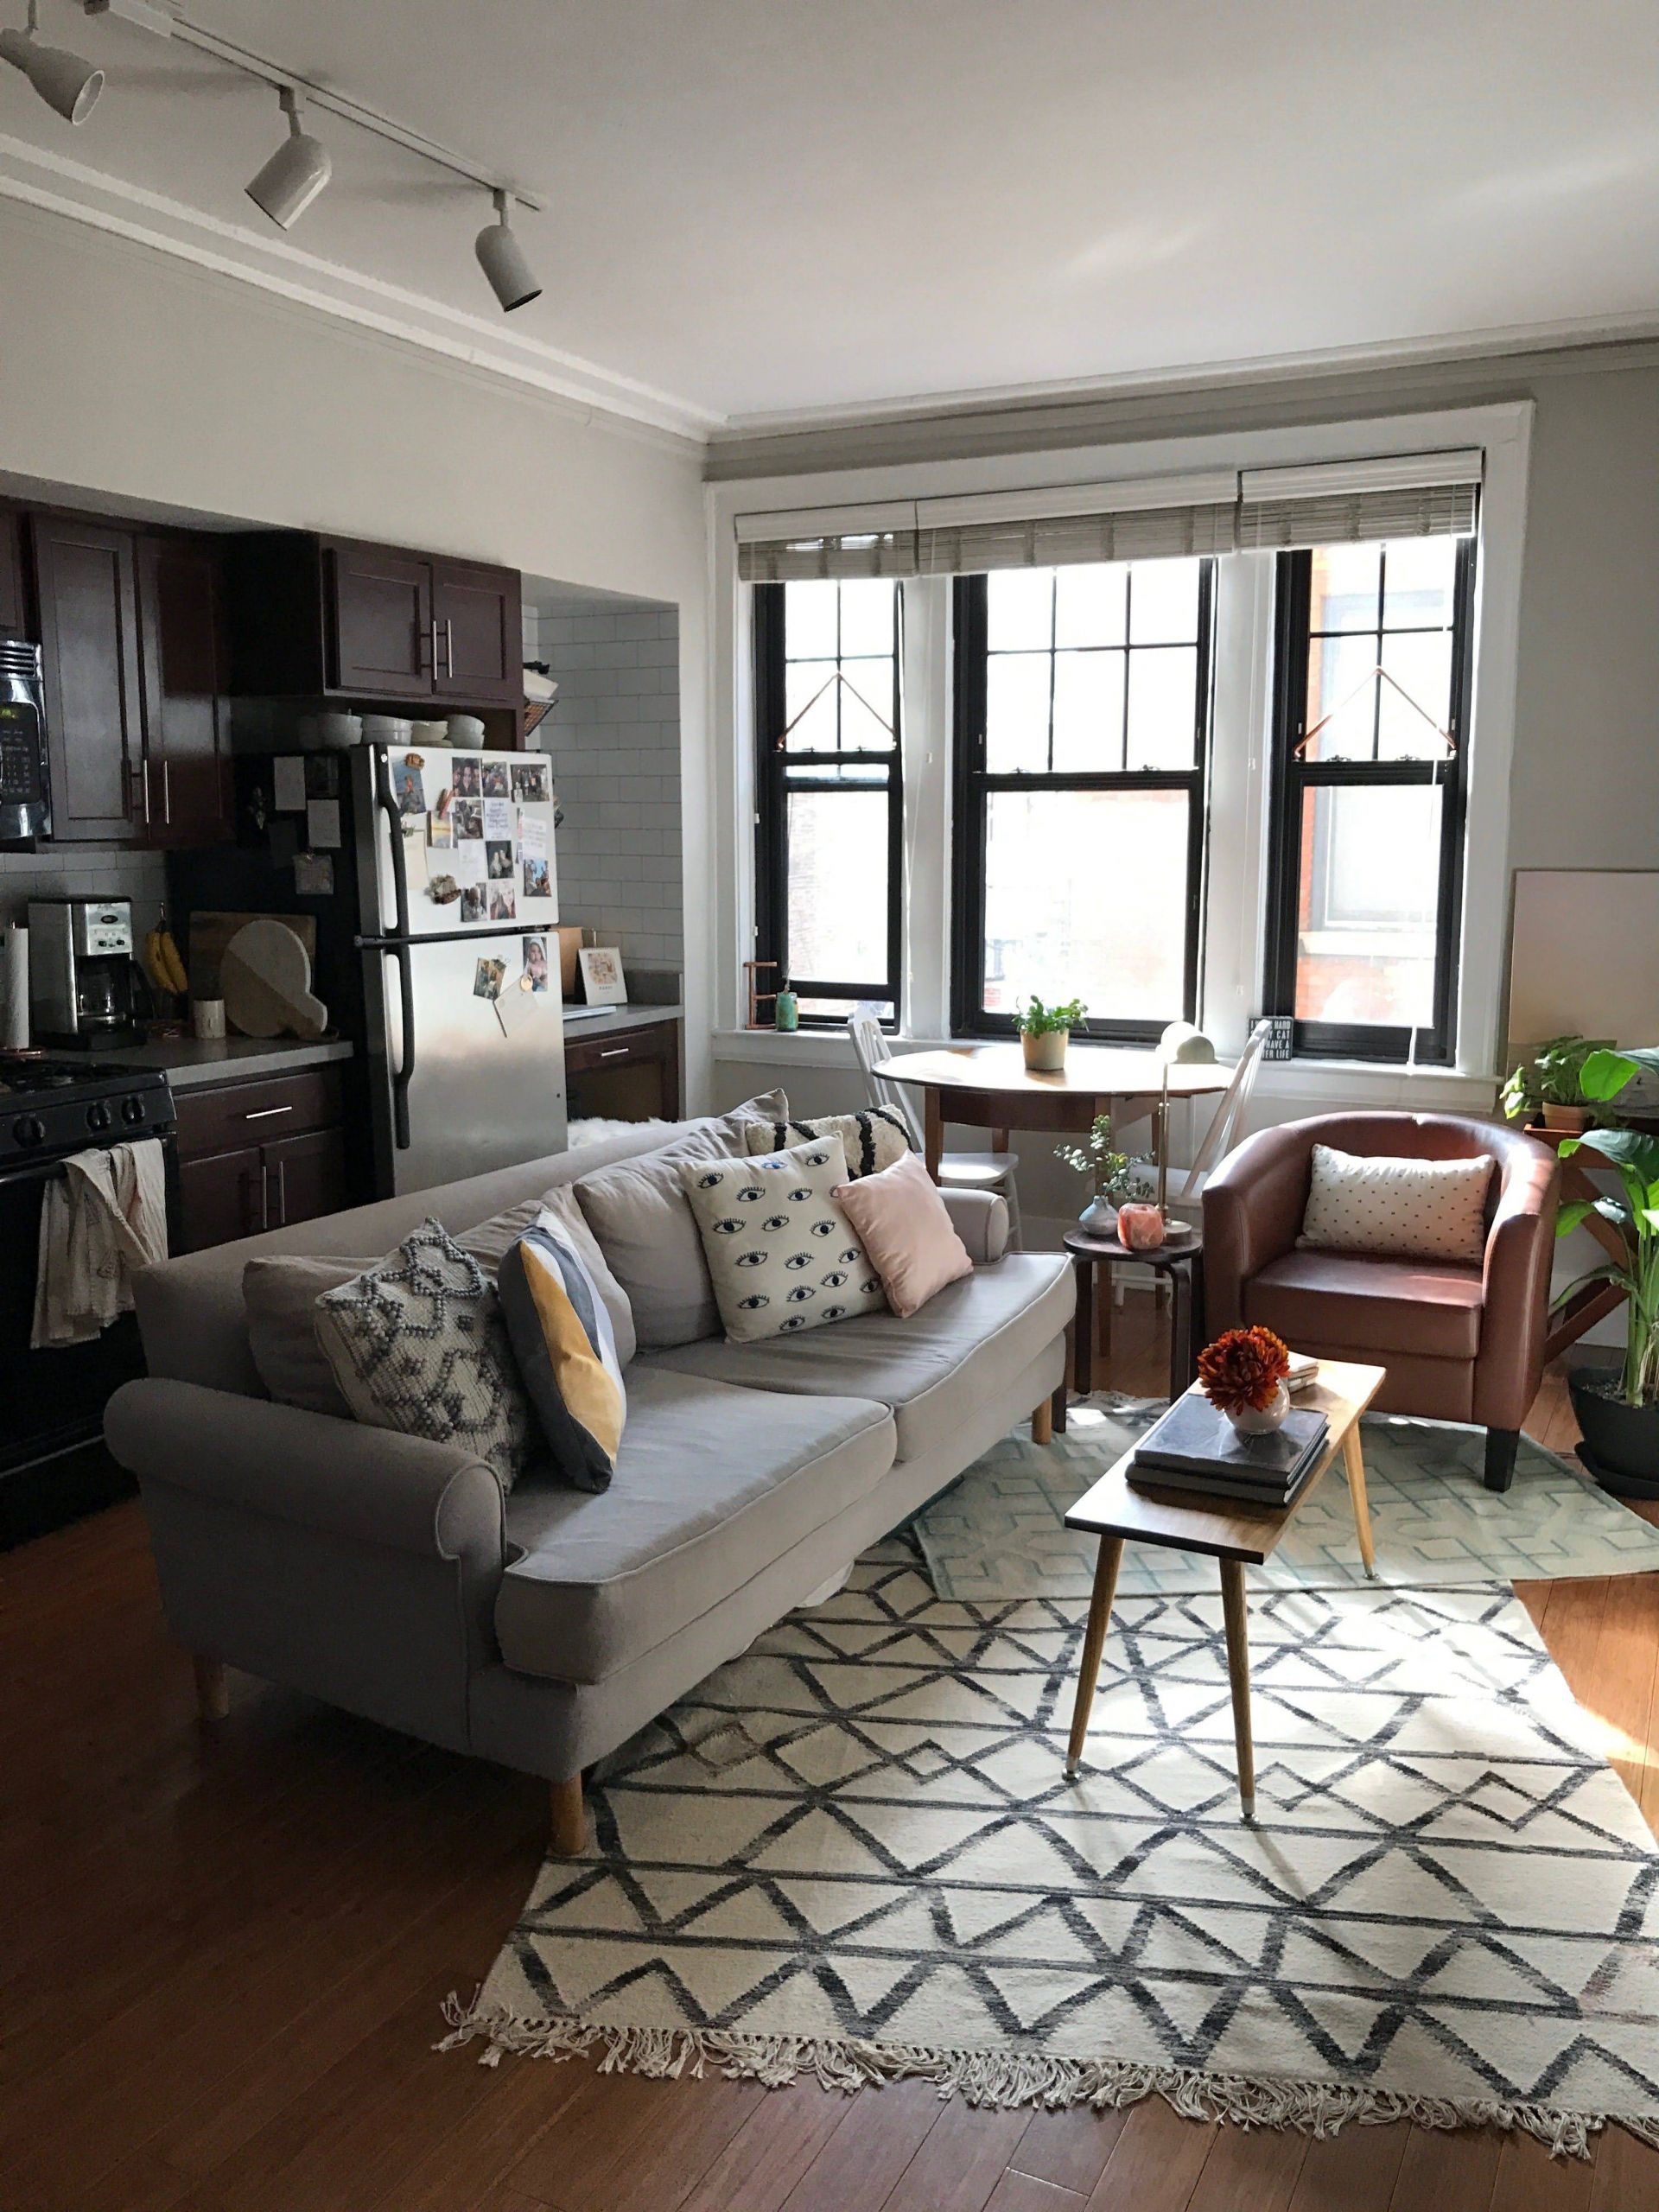 Apartment Design Ideas Awesome A Smart Layout Makes This Studio Feel Big and Bright